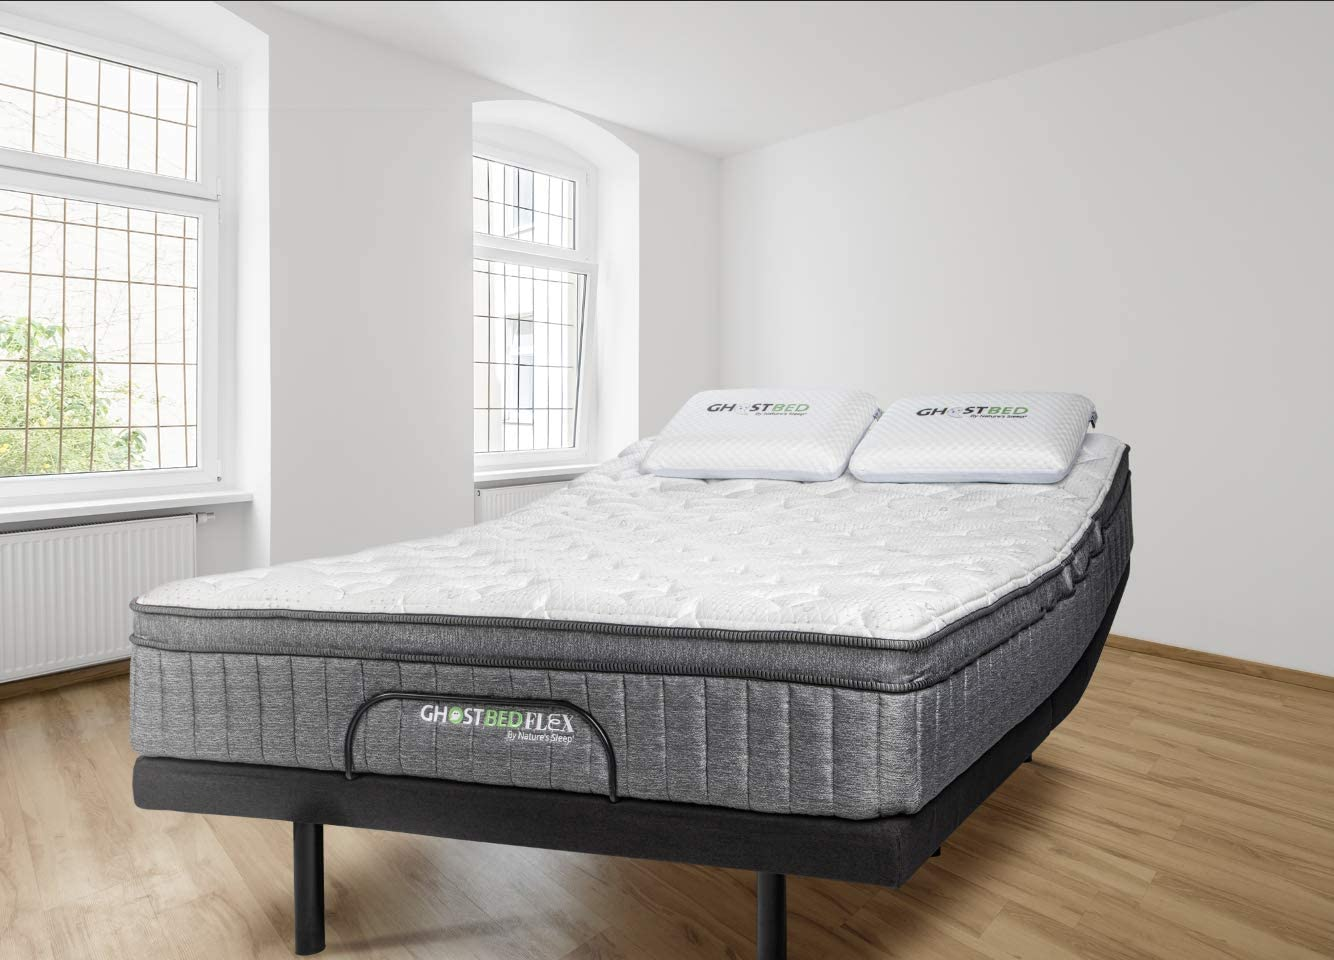 The Ghostbed Flex Hybrid Mattress Review